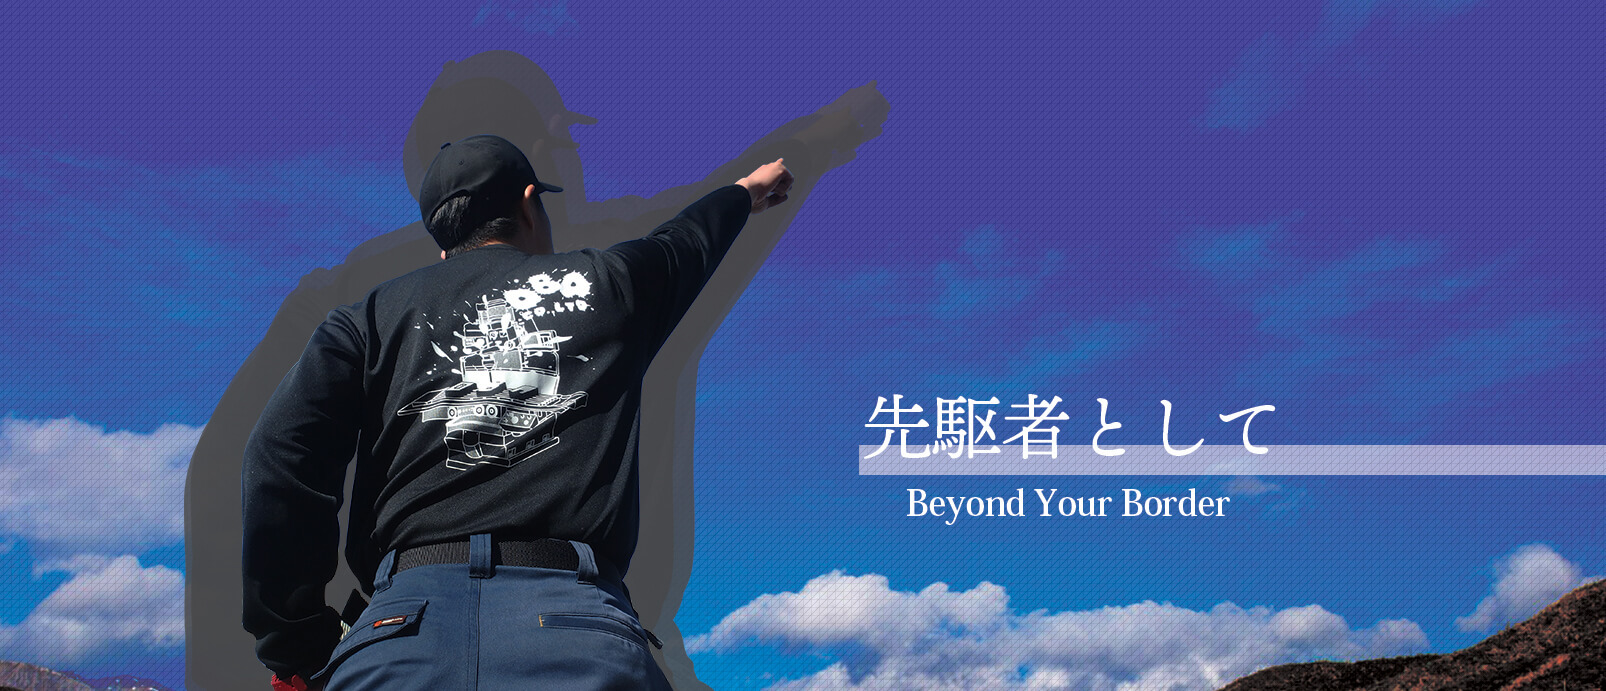 先駆者として Beyond Your Border